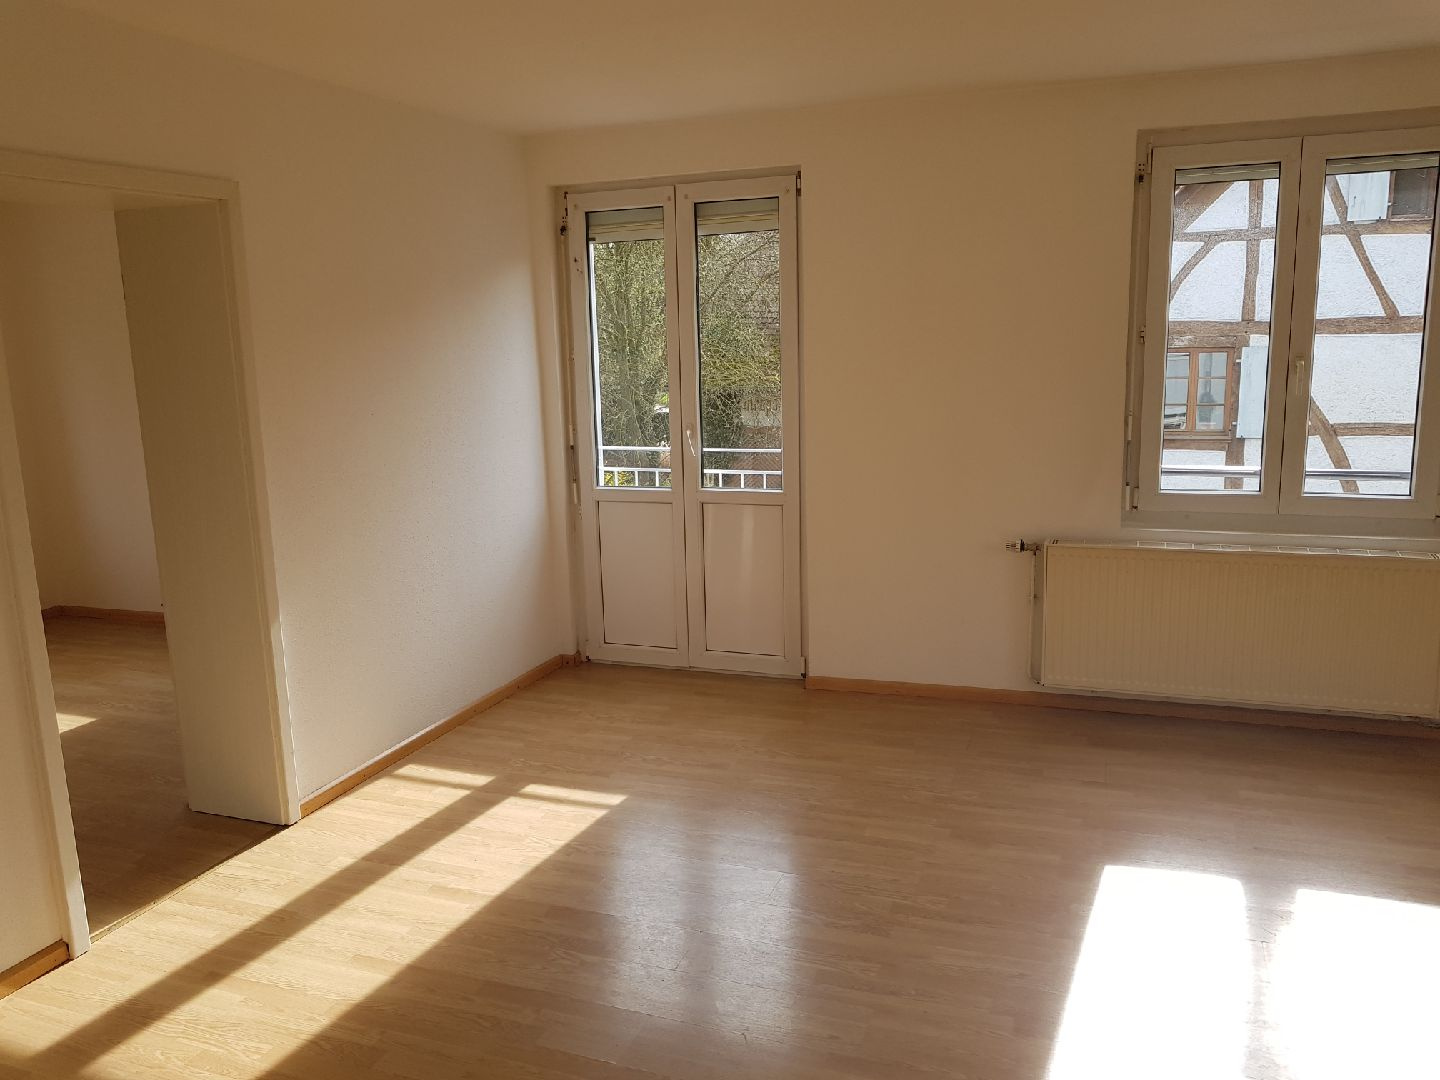 Location Appartement altkirch